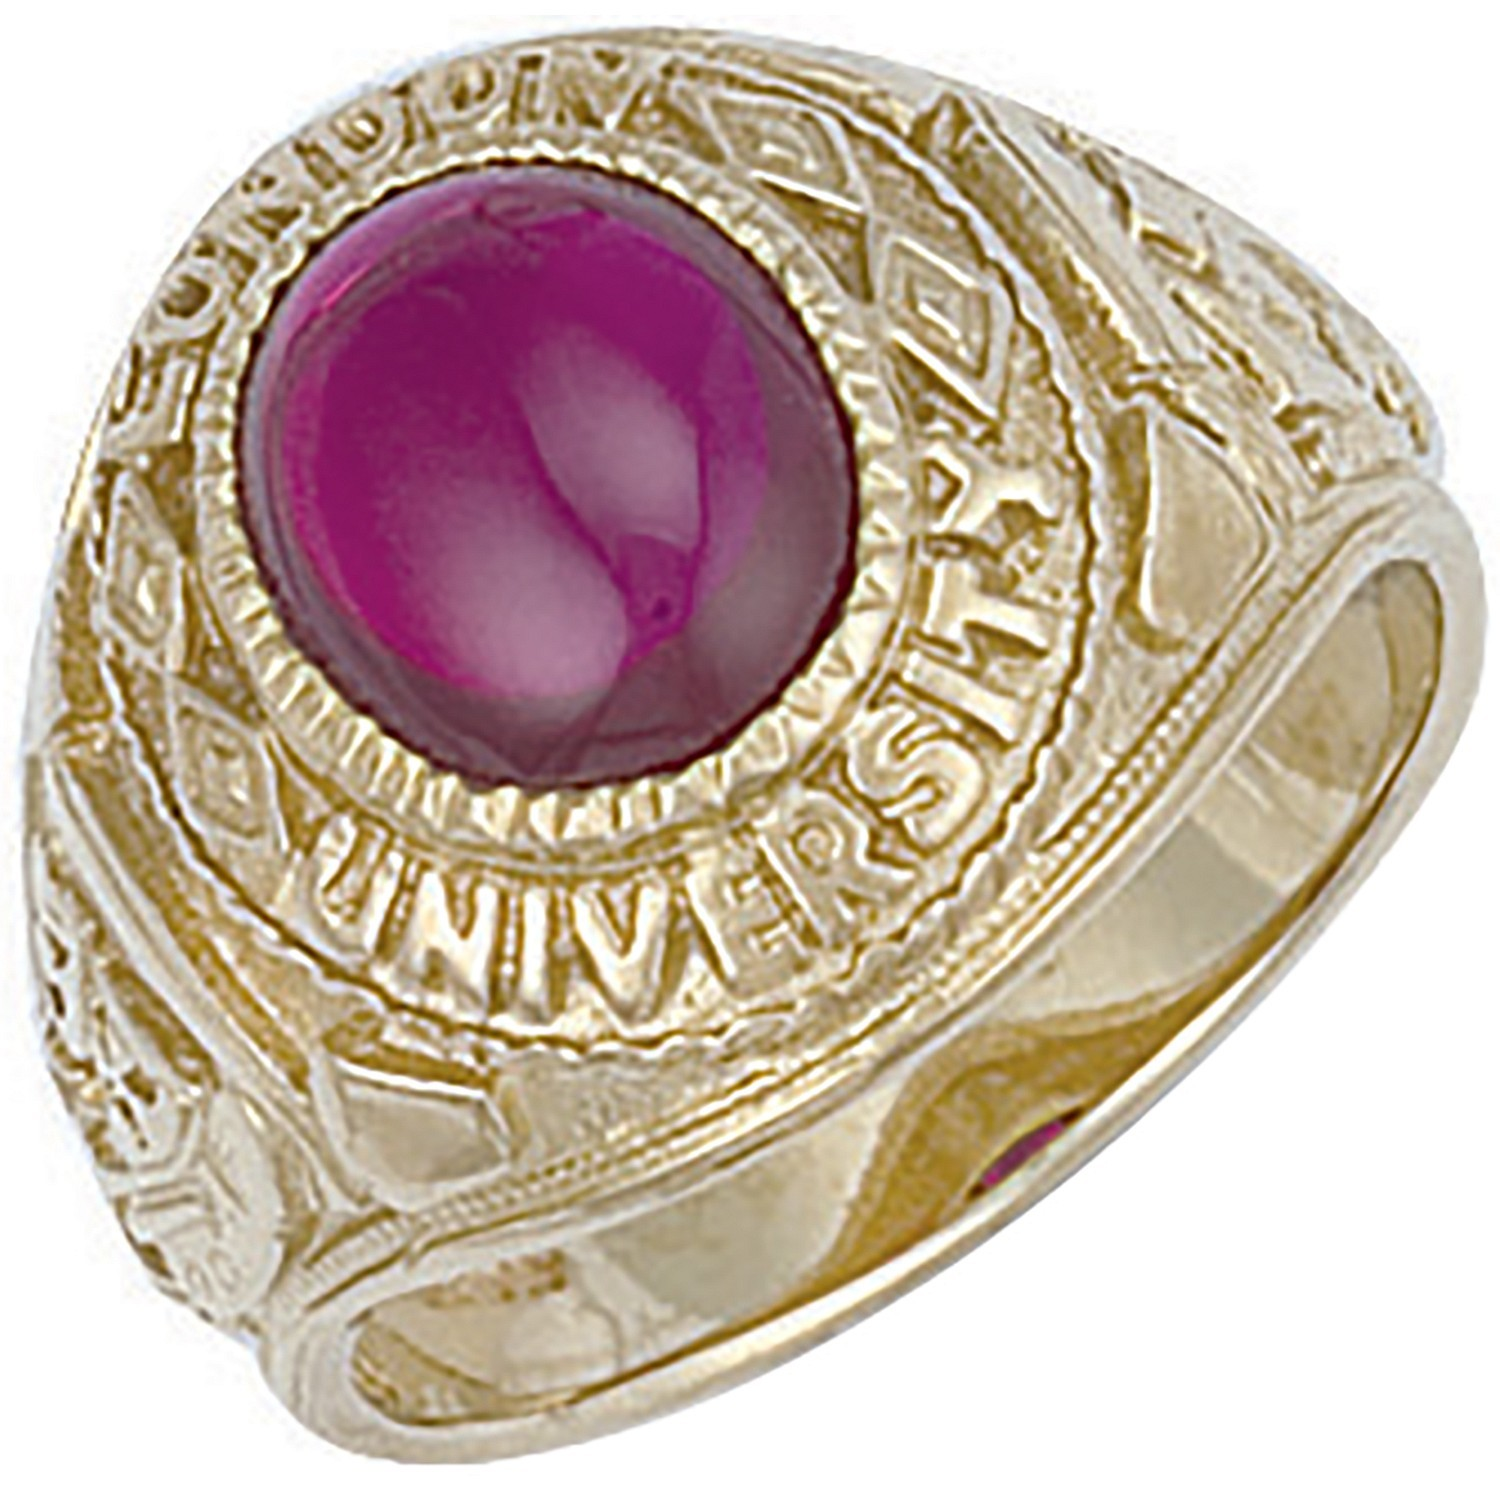 Y/G Red Cabochon London University Ring